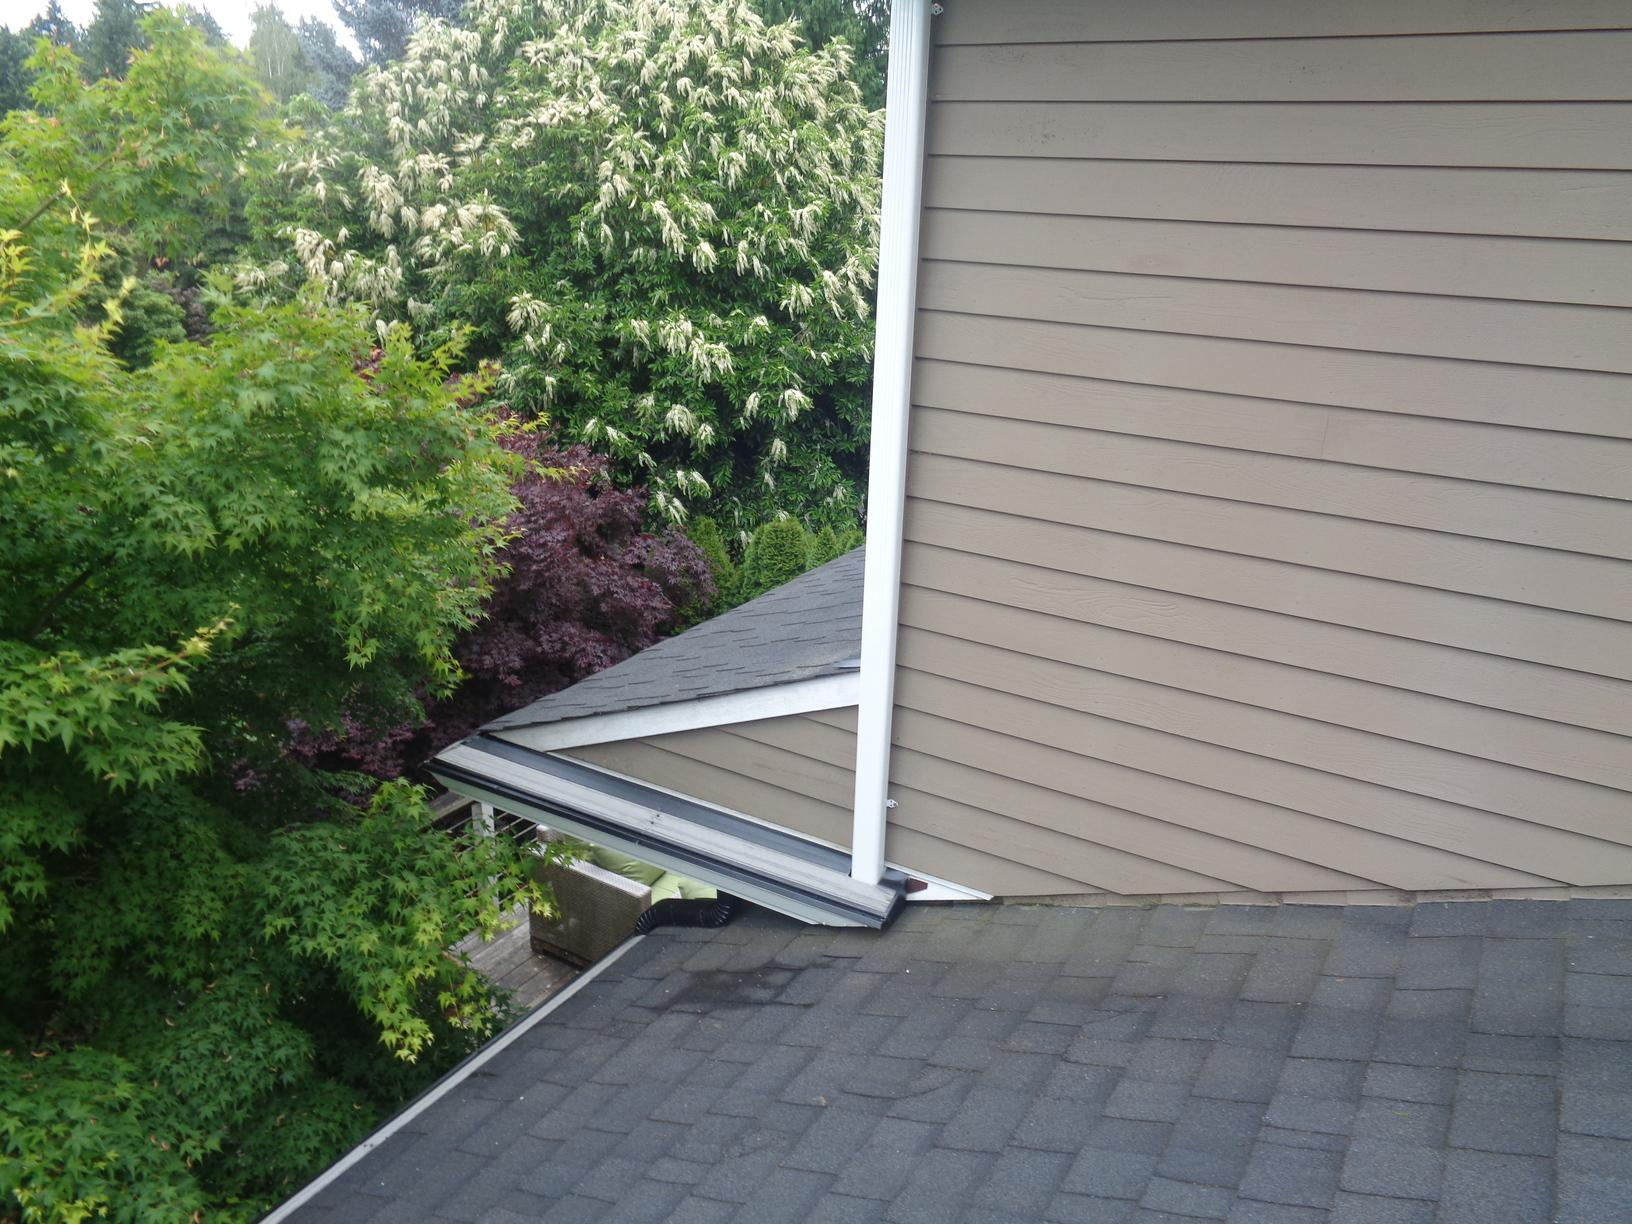 MasterShield Gutter Guard Installed in Seattle, WA - After Photo